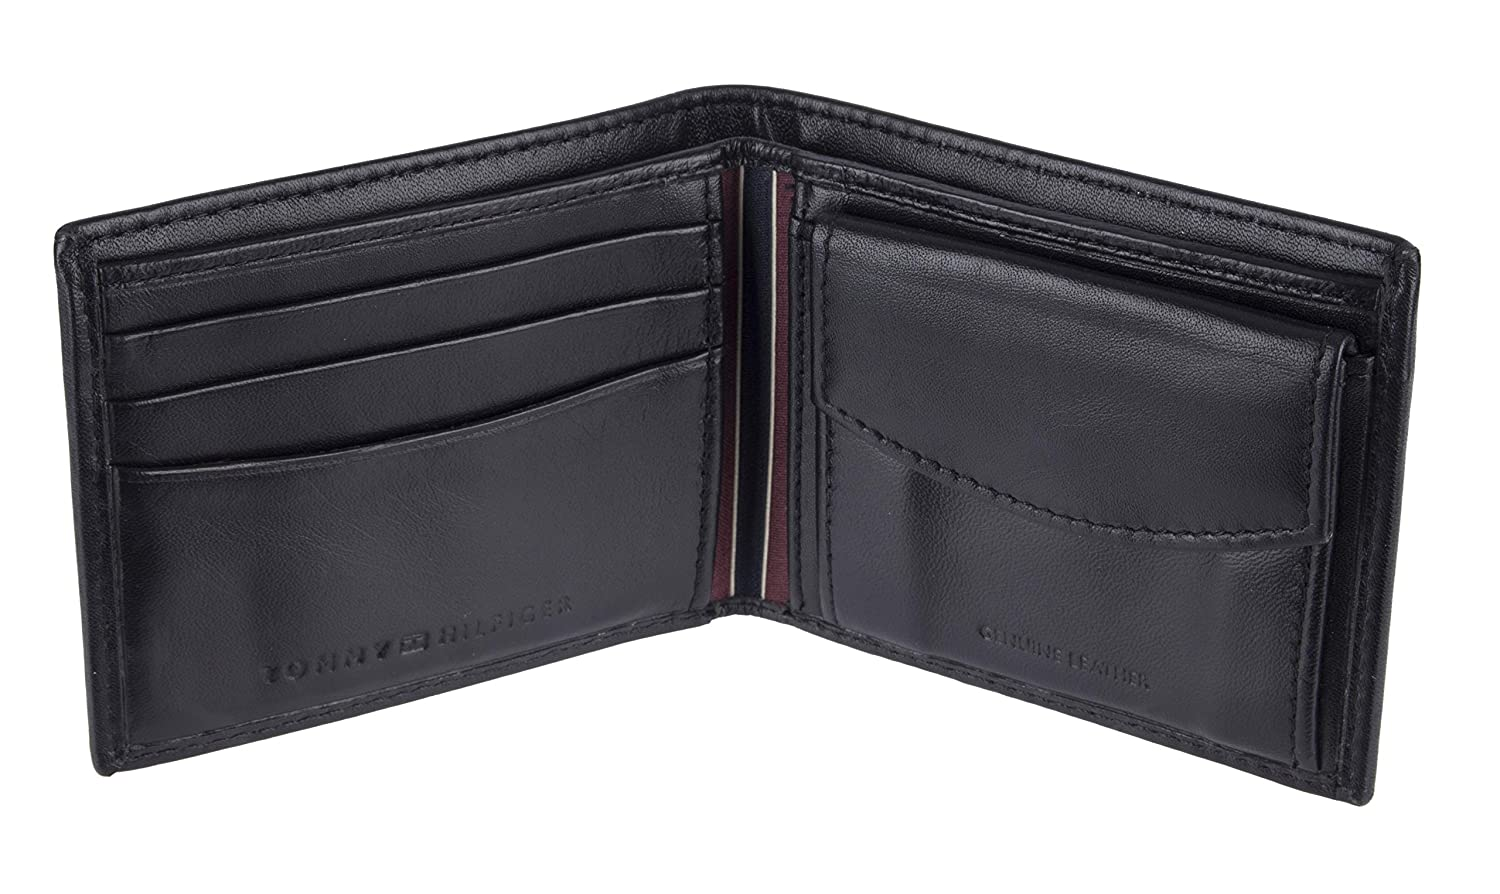 Amazon.com: Tommy Hilfiger Monedero de bolsillo – Billetera ...